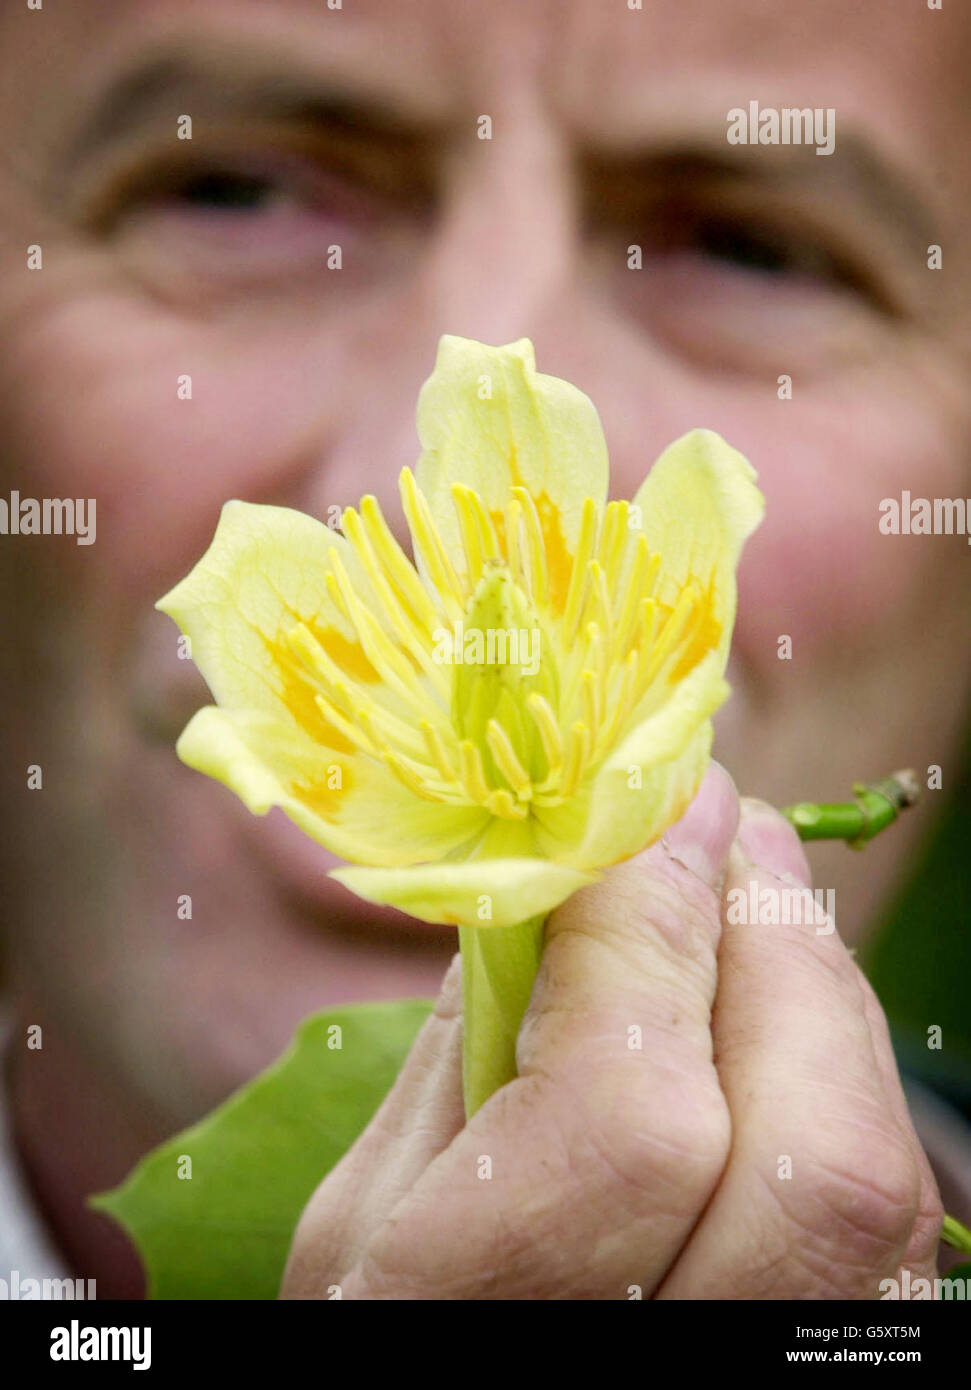 The Real Attraction Today Are The Exotic Yellow Tulip Shaped Flowers